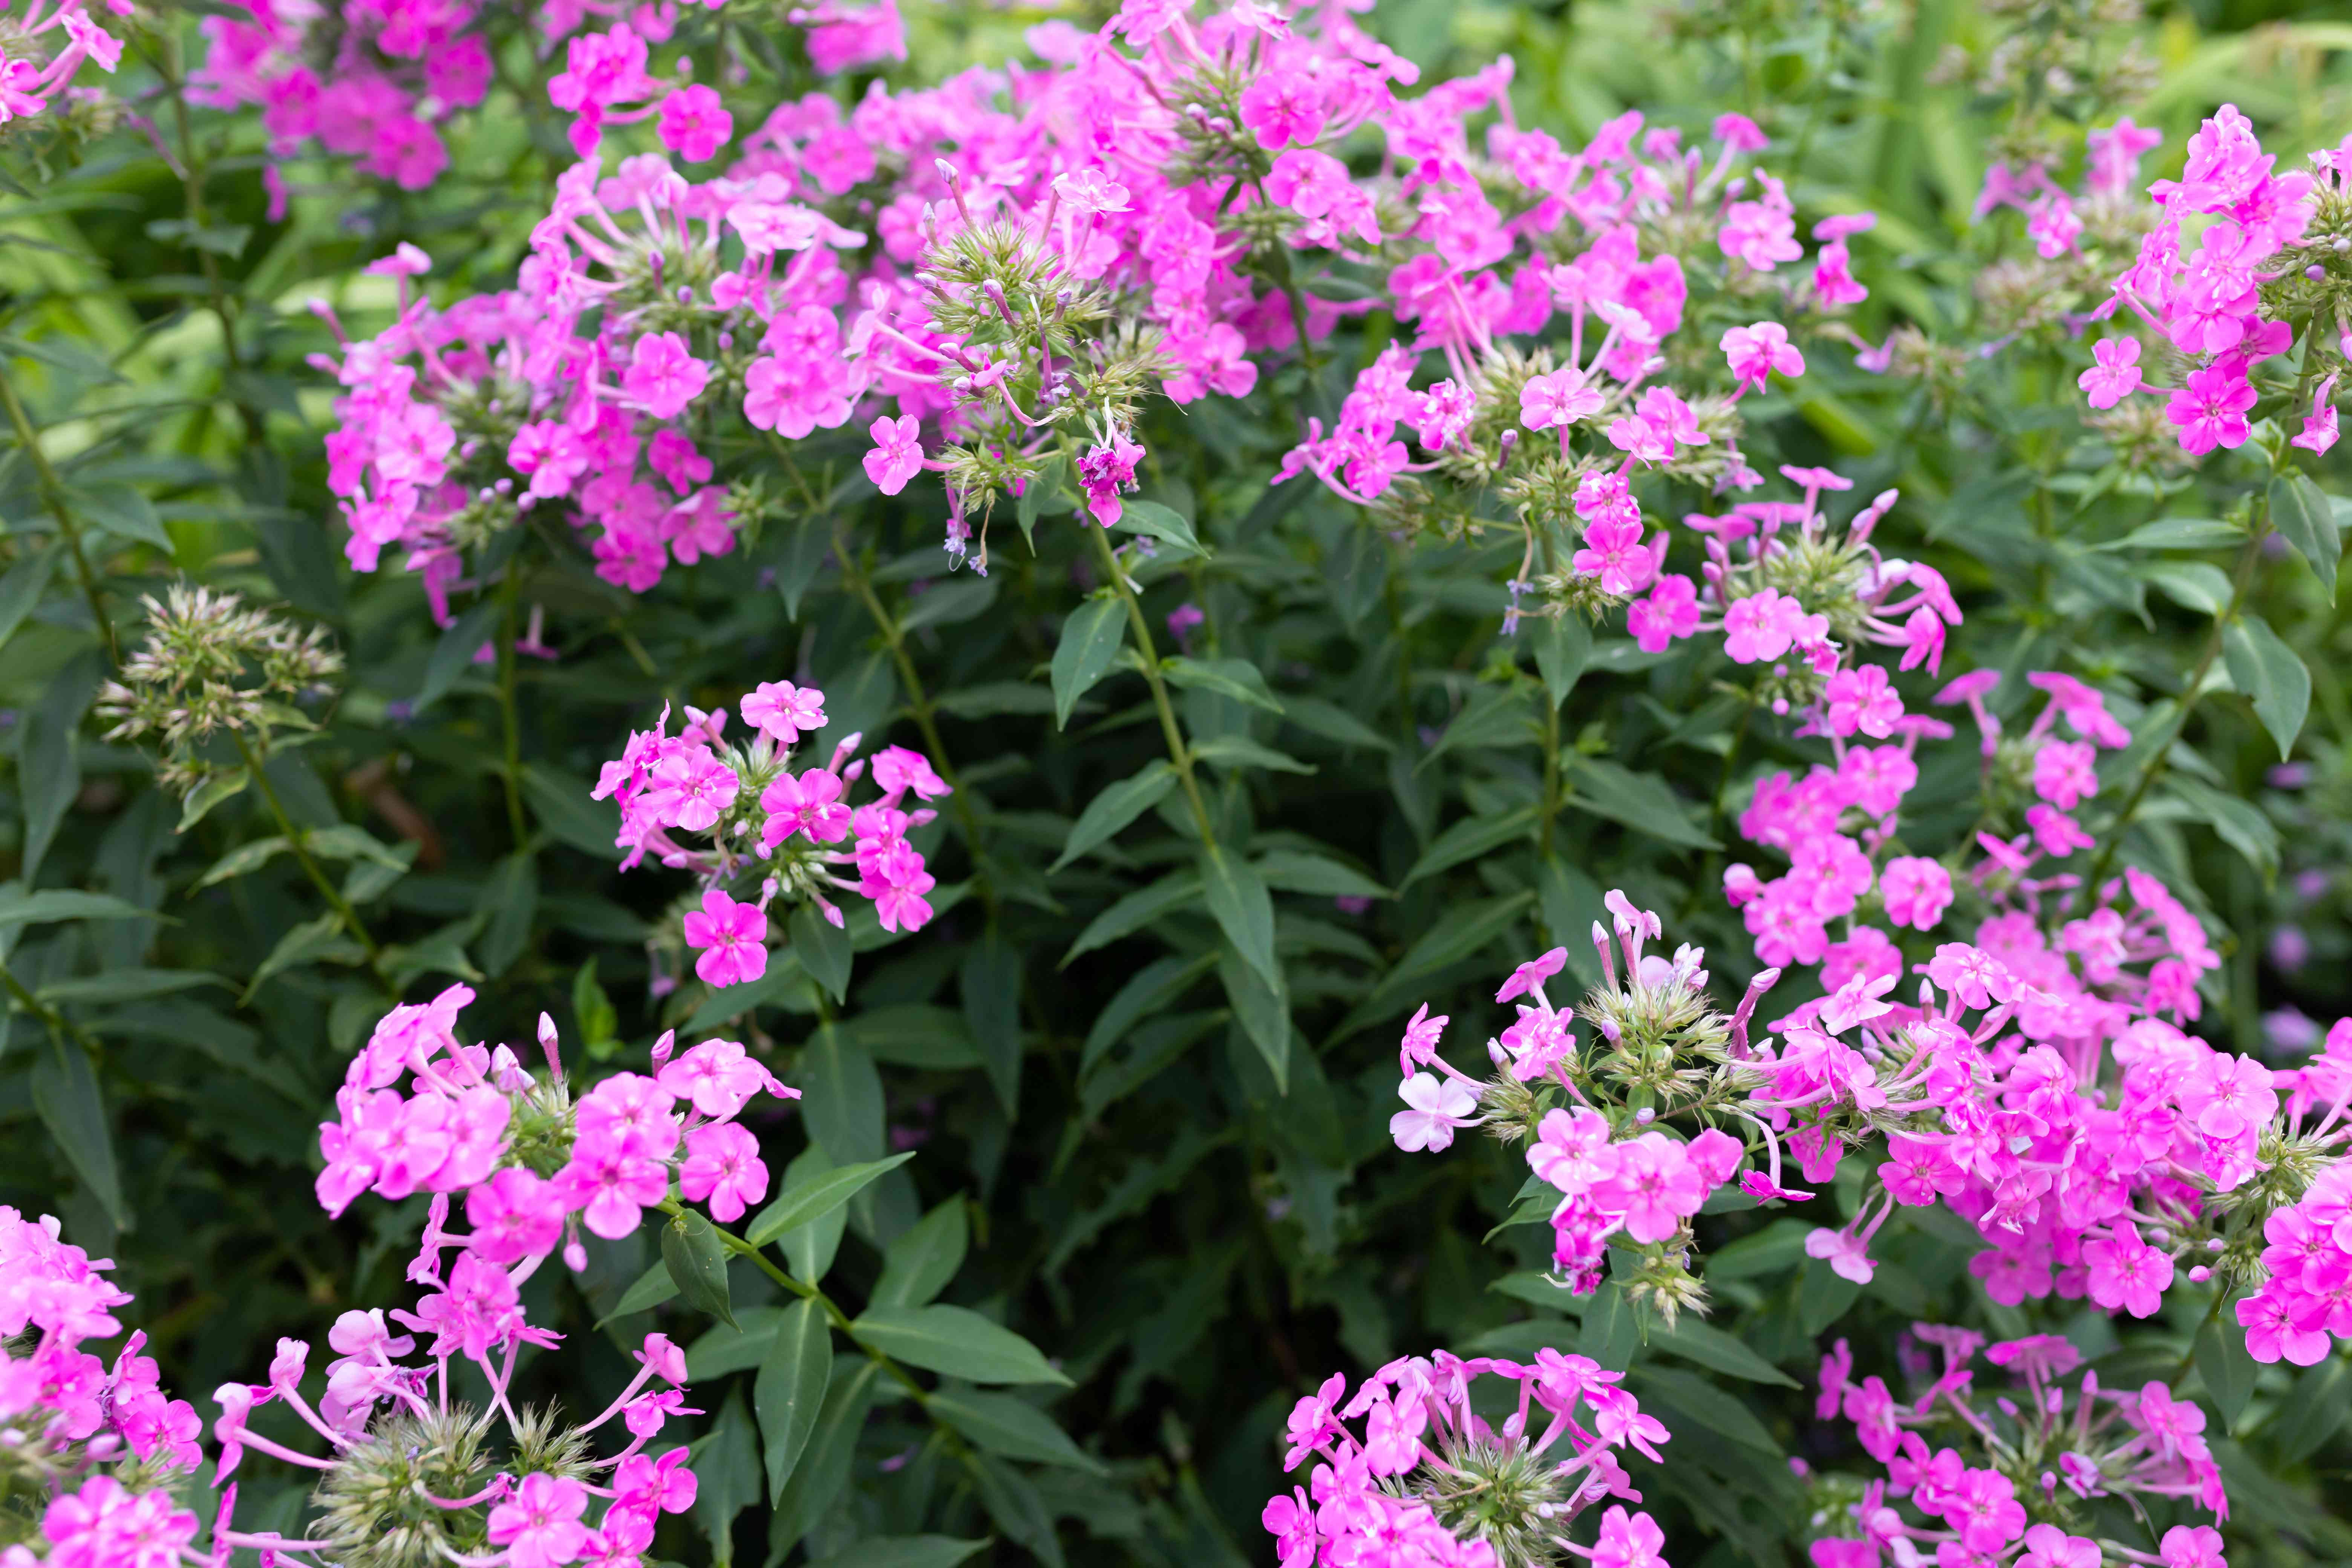 Phlox drummondii with pink flowers and stems